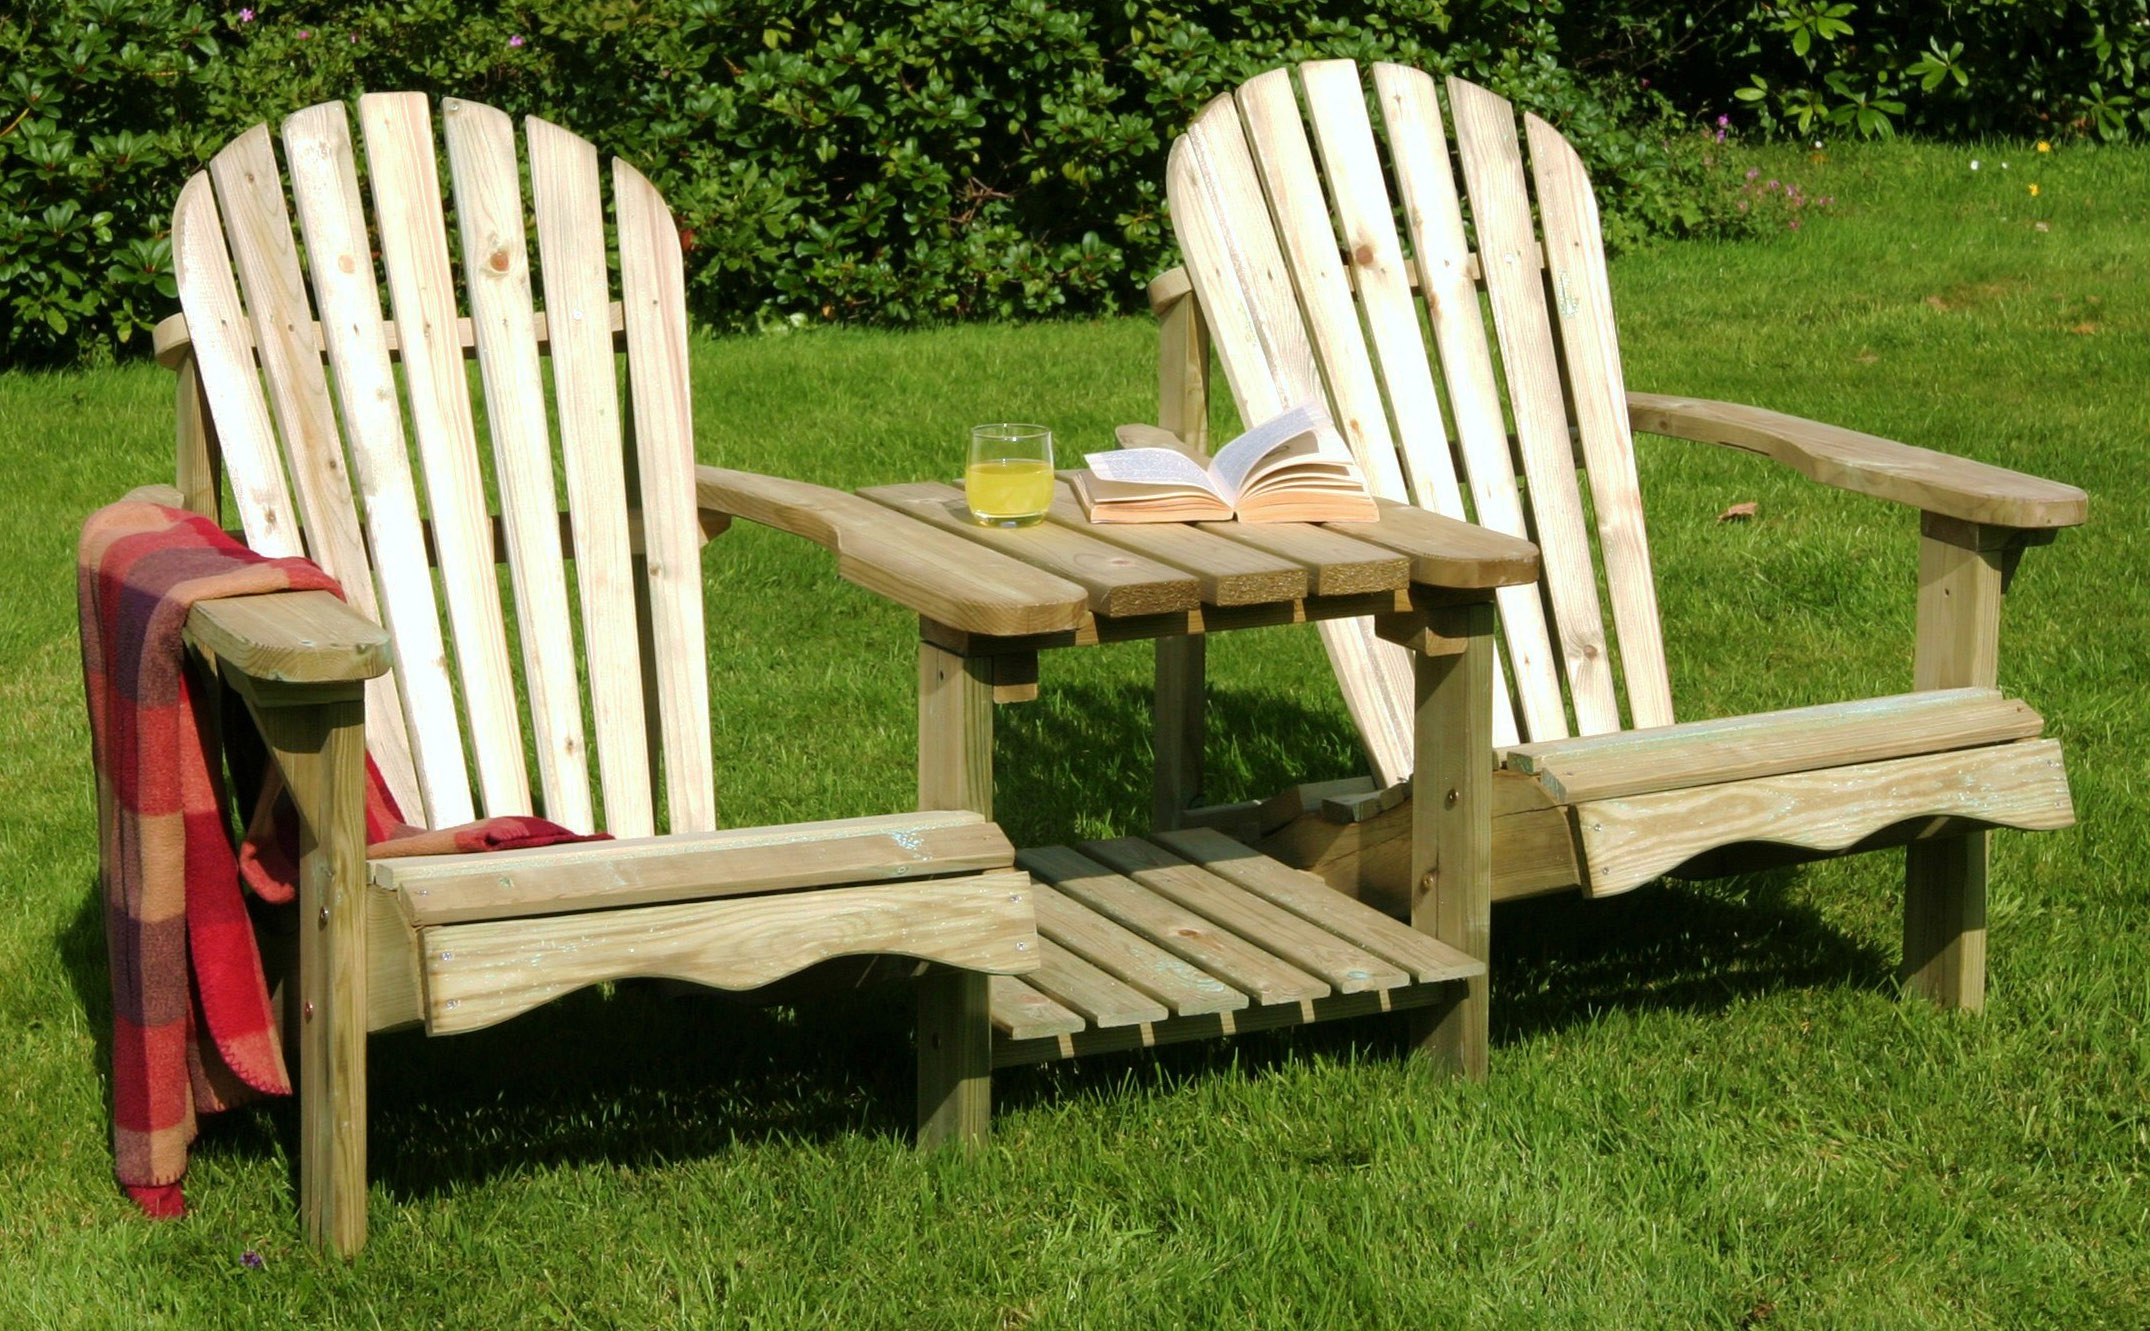 wooden garden furniture love seats - Wooden Garden Furniture Love Seats